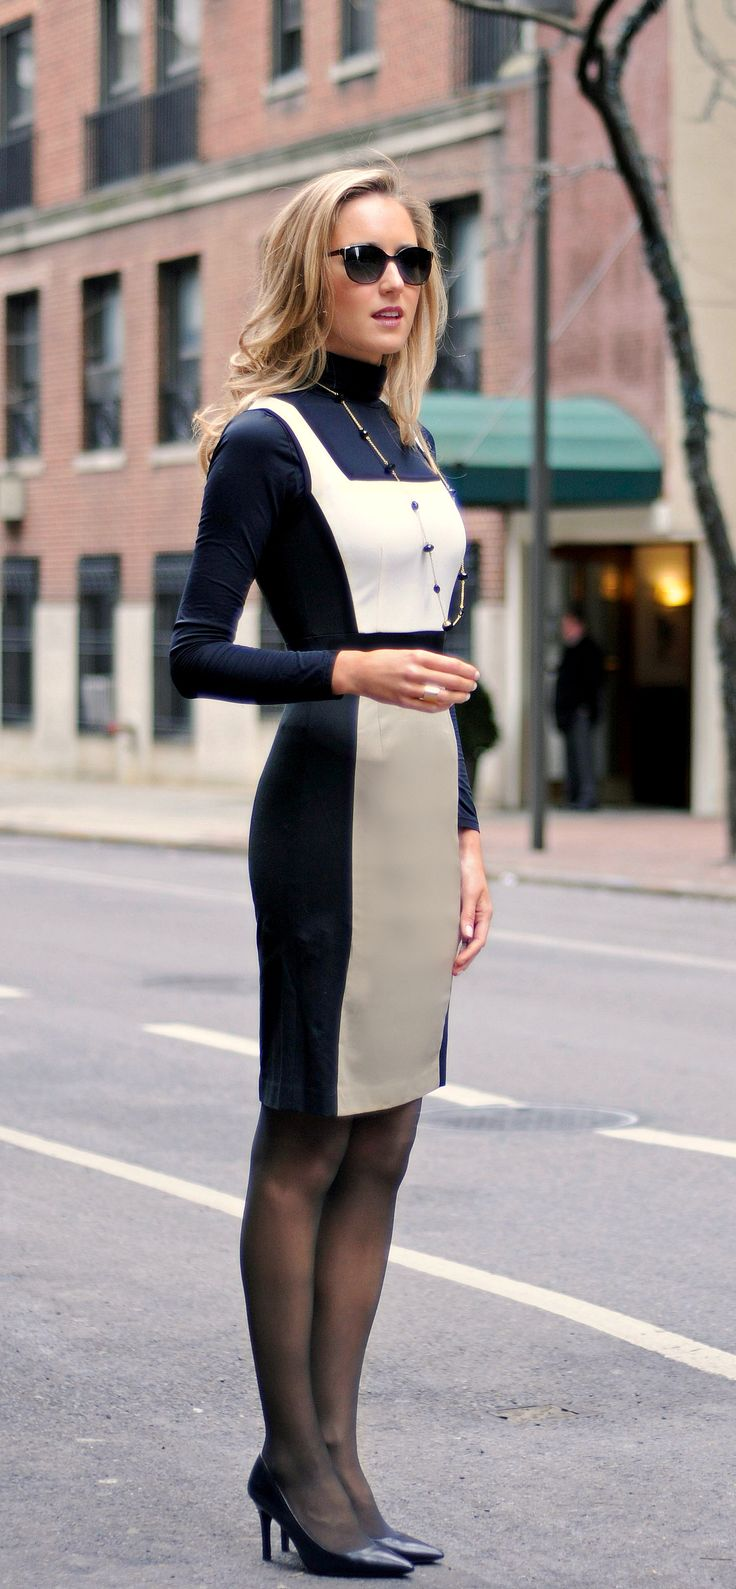 The Classy Cubicle: Colorblock Dress with Banana Republic #hellosloan